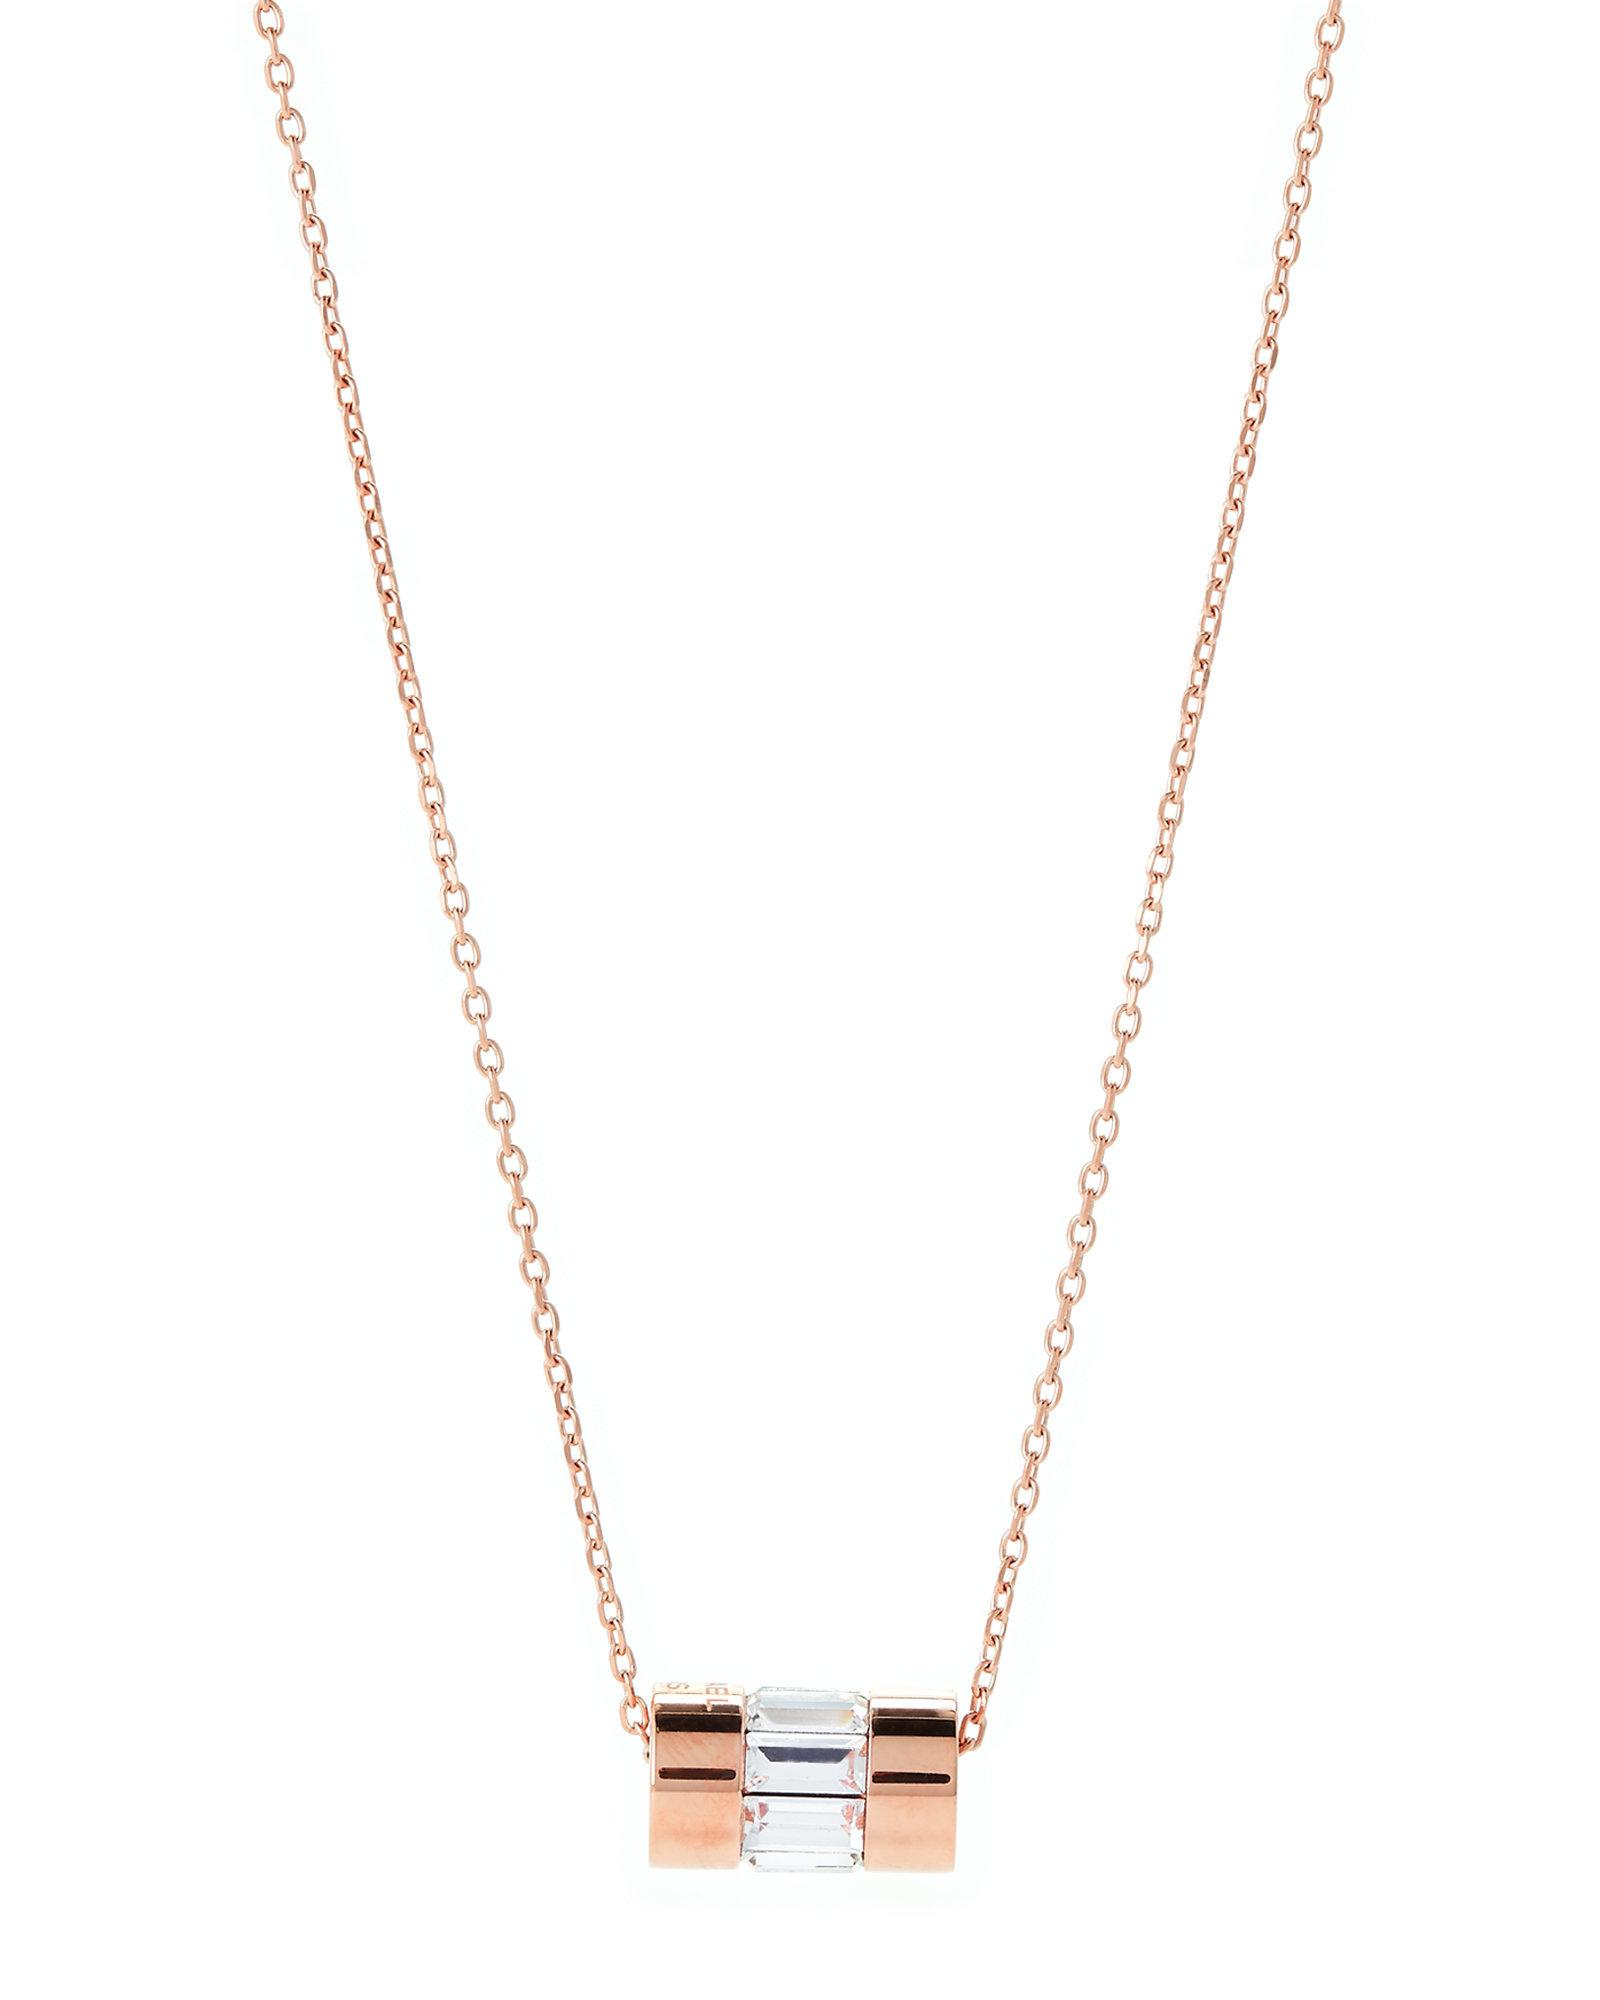 8defadd57d0c9 Michael Kors Multicolor Rose Gold-tone Cylindrical Pendant Necklace